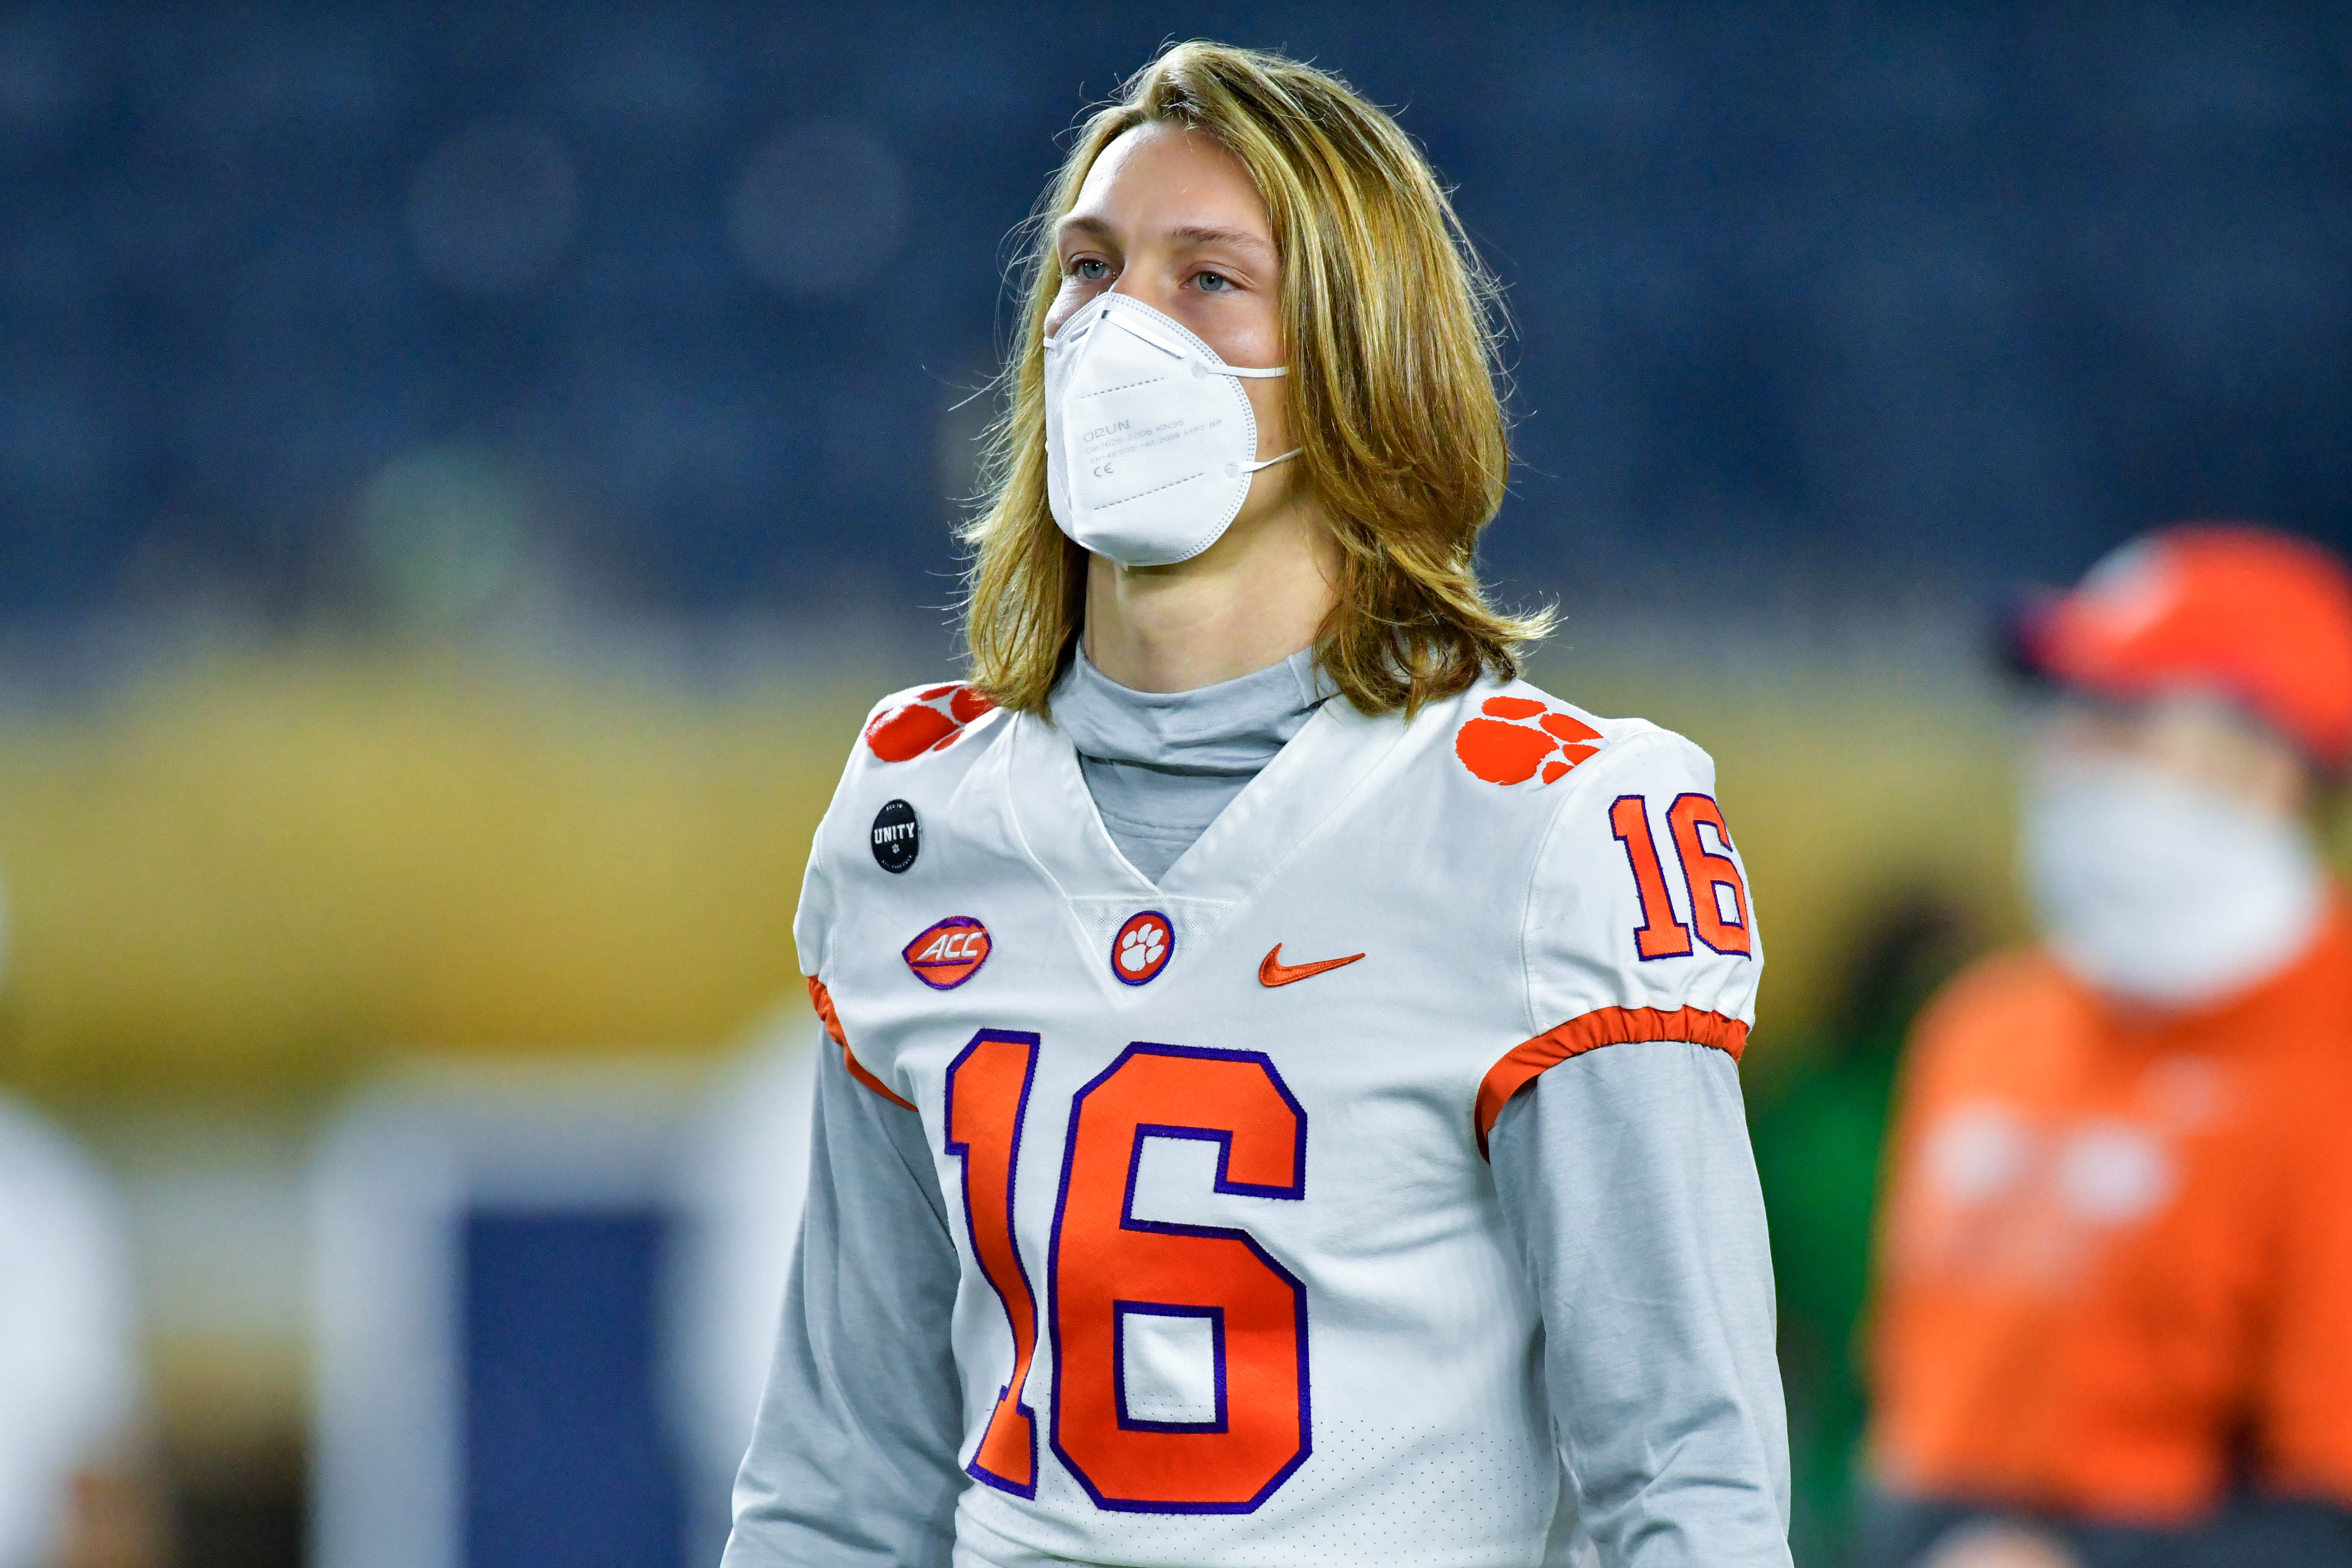 Quarterback Trevor Lawrence of the Clemson Tigers watches warmups